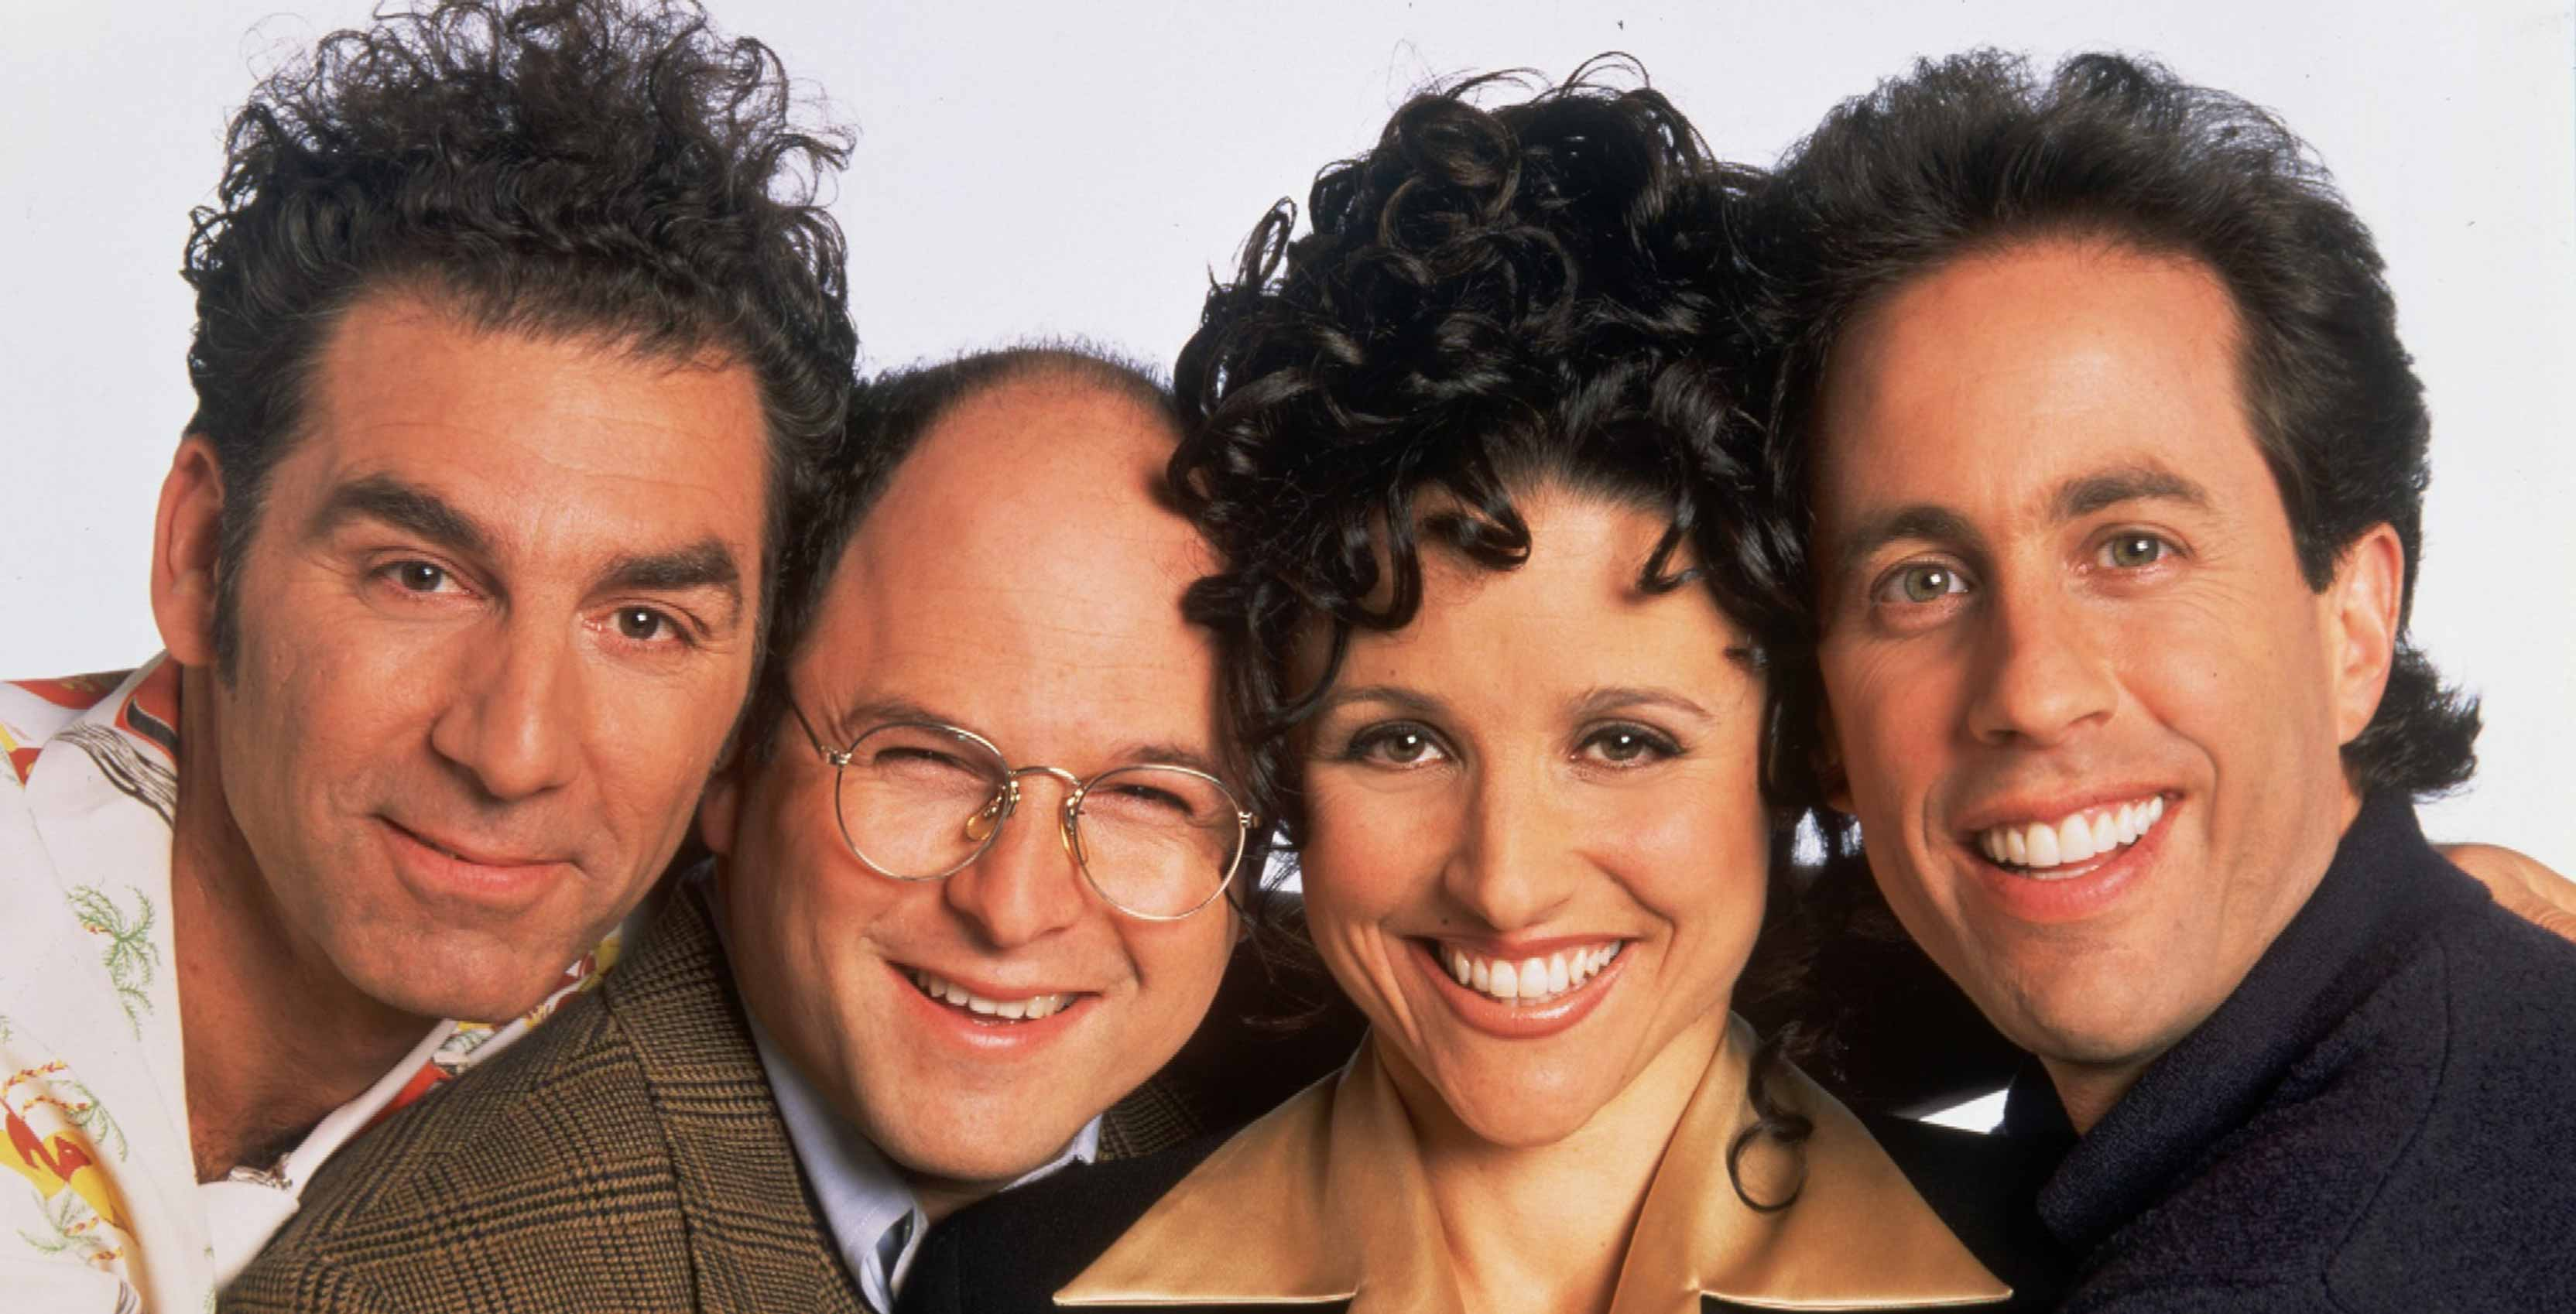 Netflix lands global streaming rights to 'Seinfeld,' starting in 2021